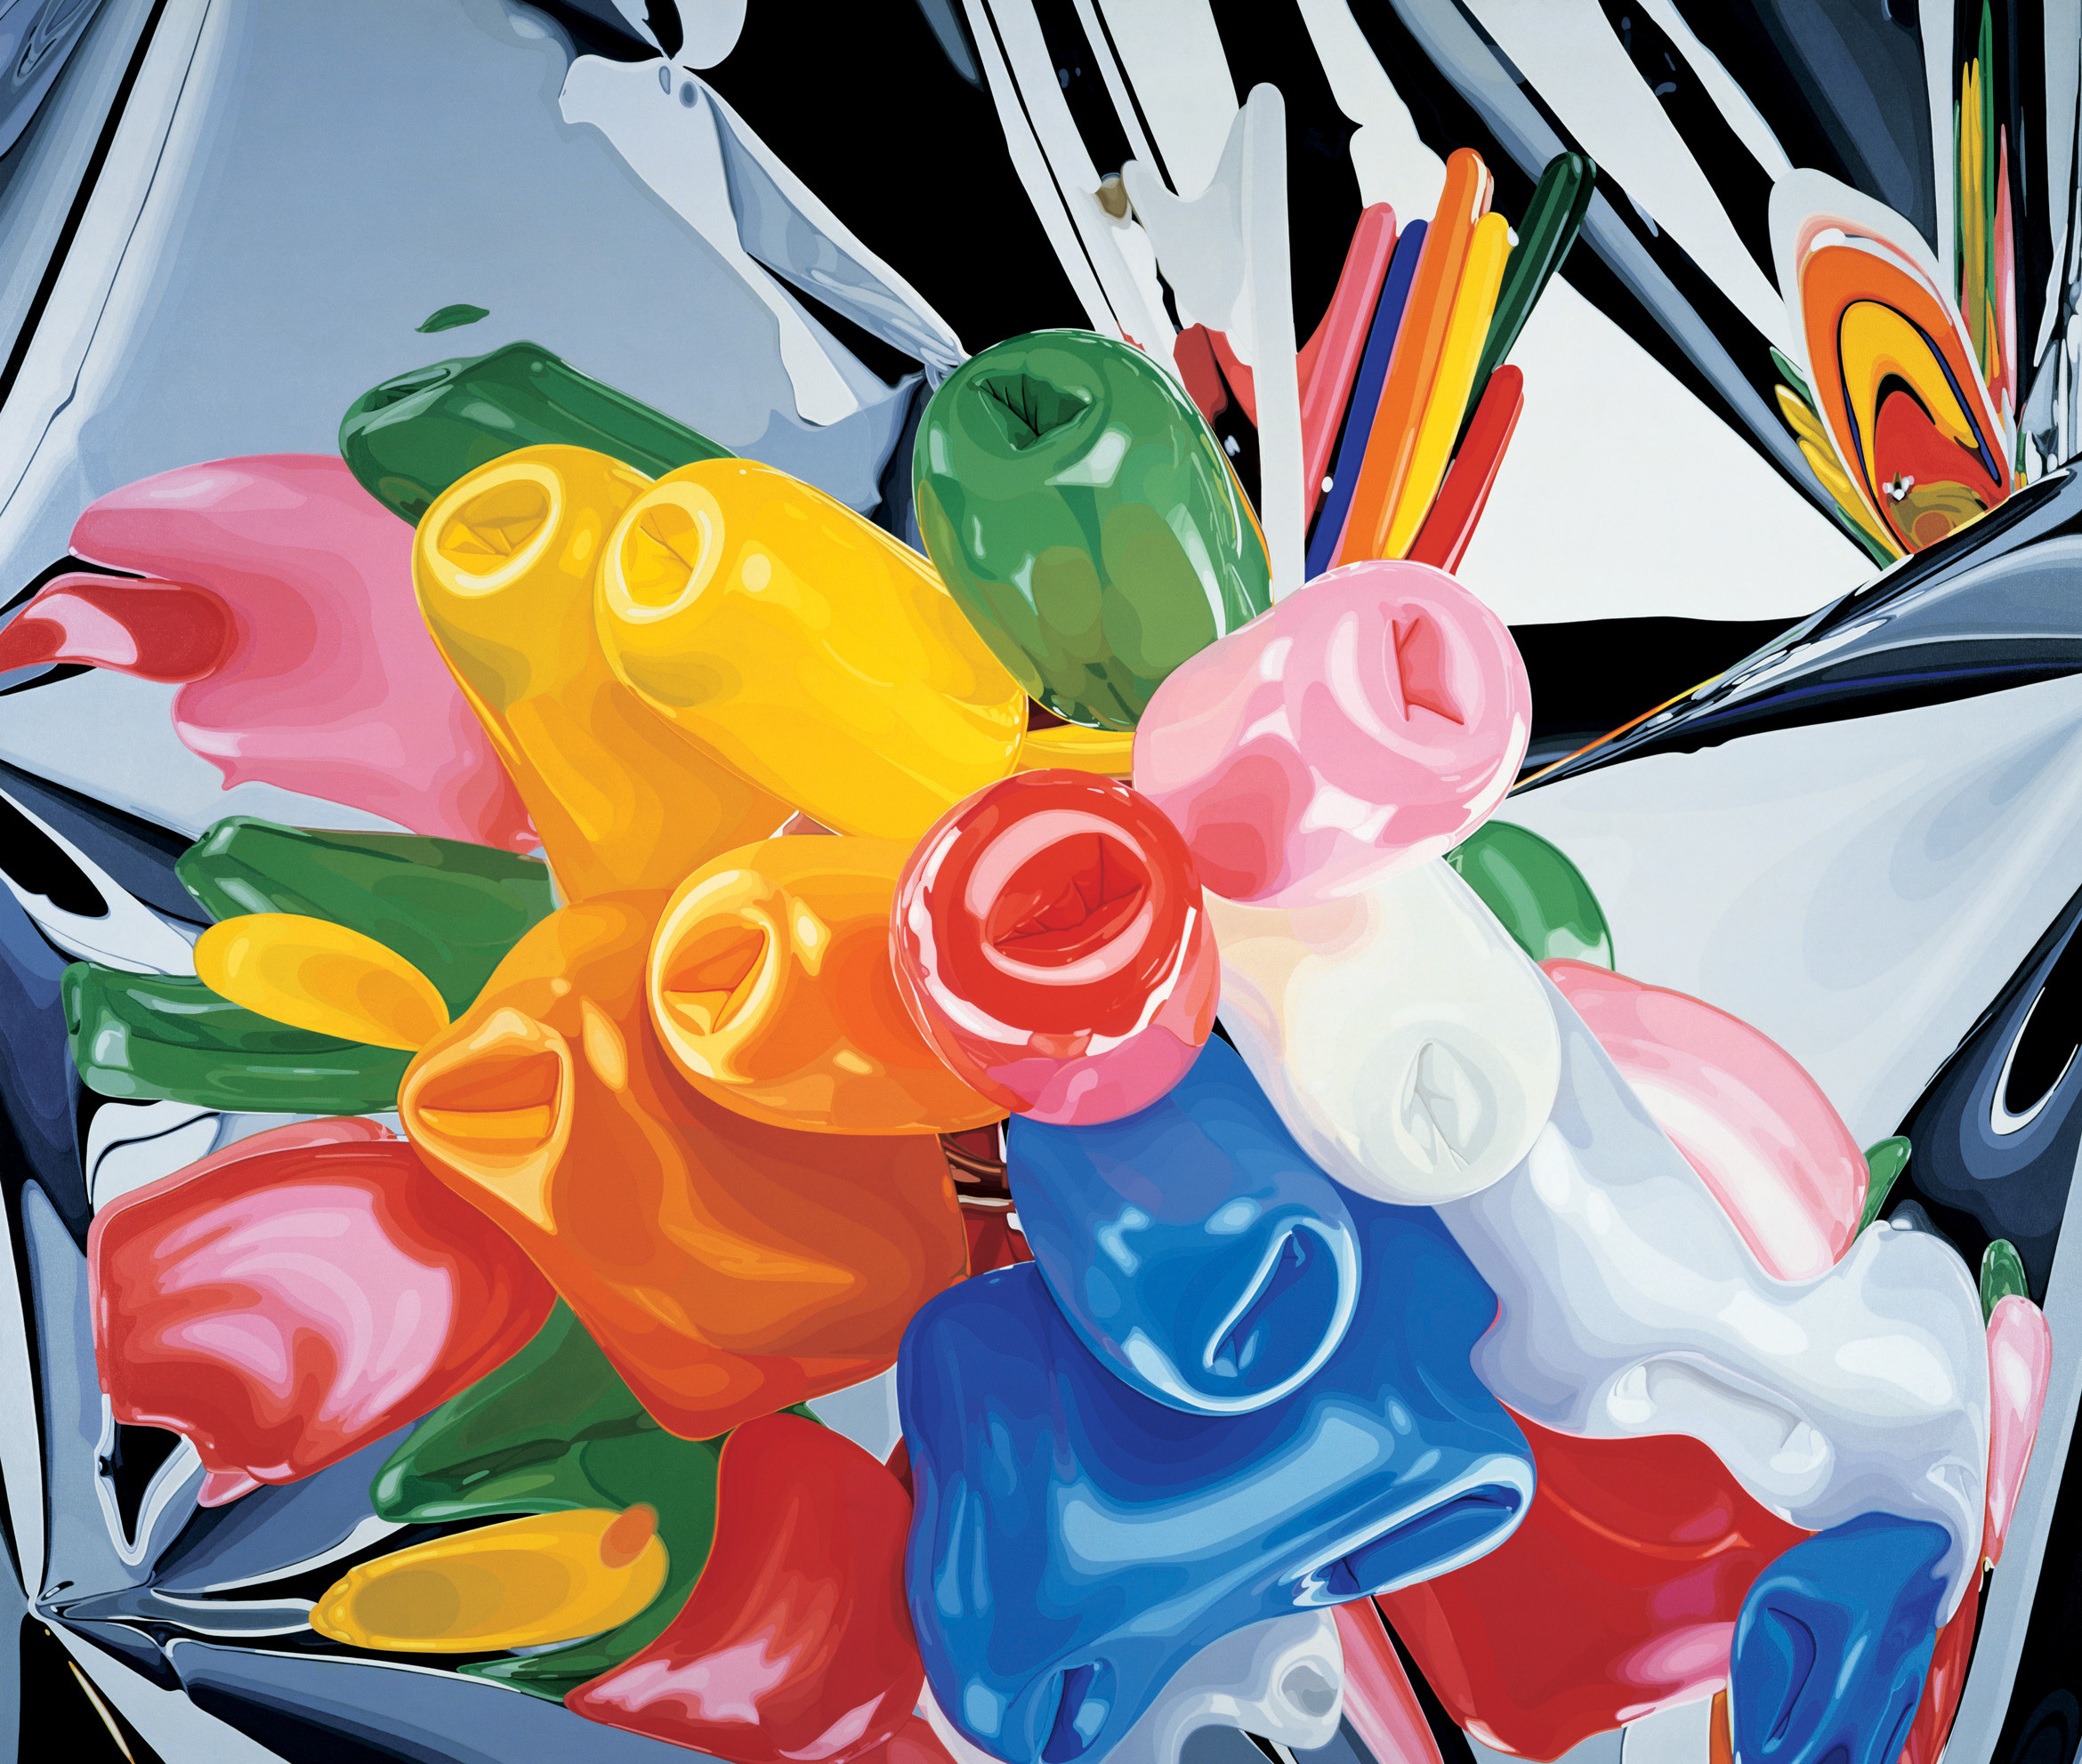 Jeff Koons,  Tulips , 1995–98. Oil on canvas; 111 3⁄8 × 131 in. (282.9 × 332.7cm). Private collection. © Jeff Koons